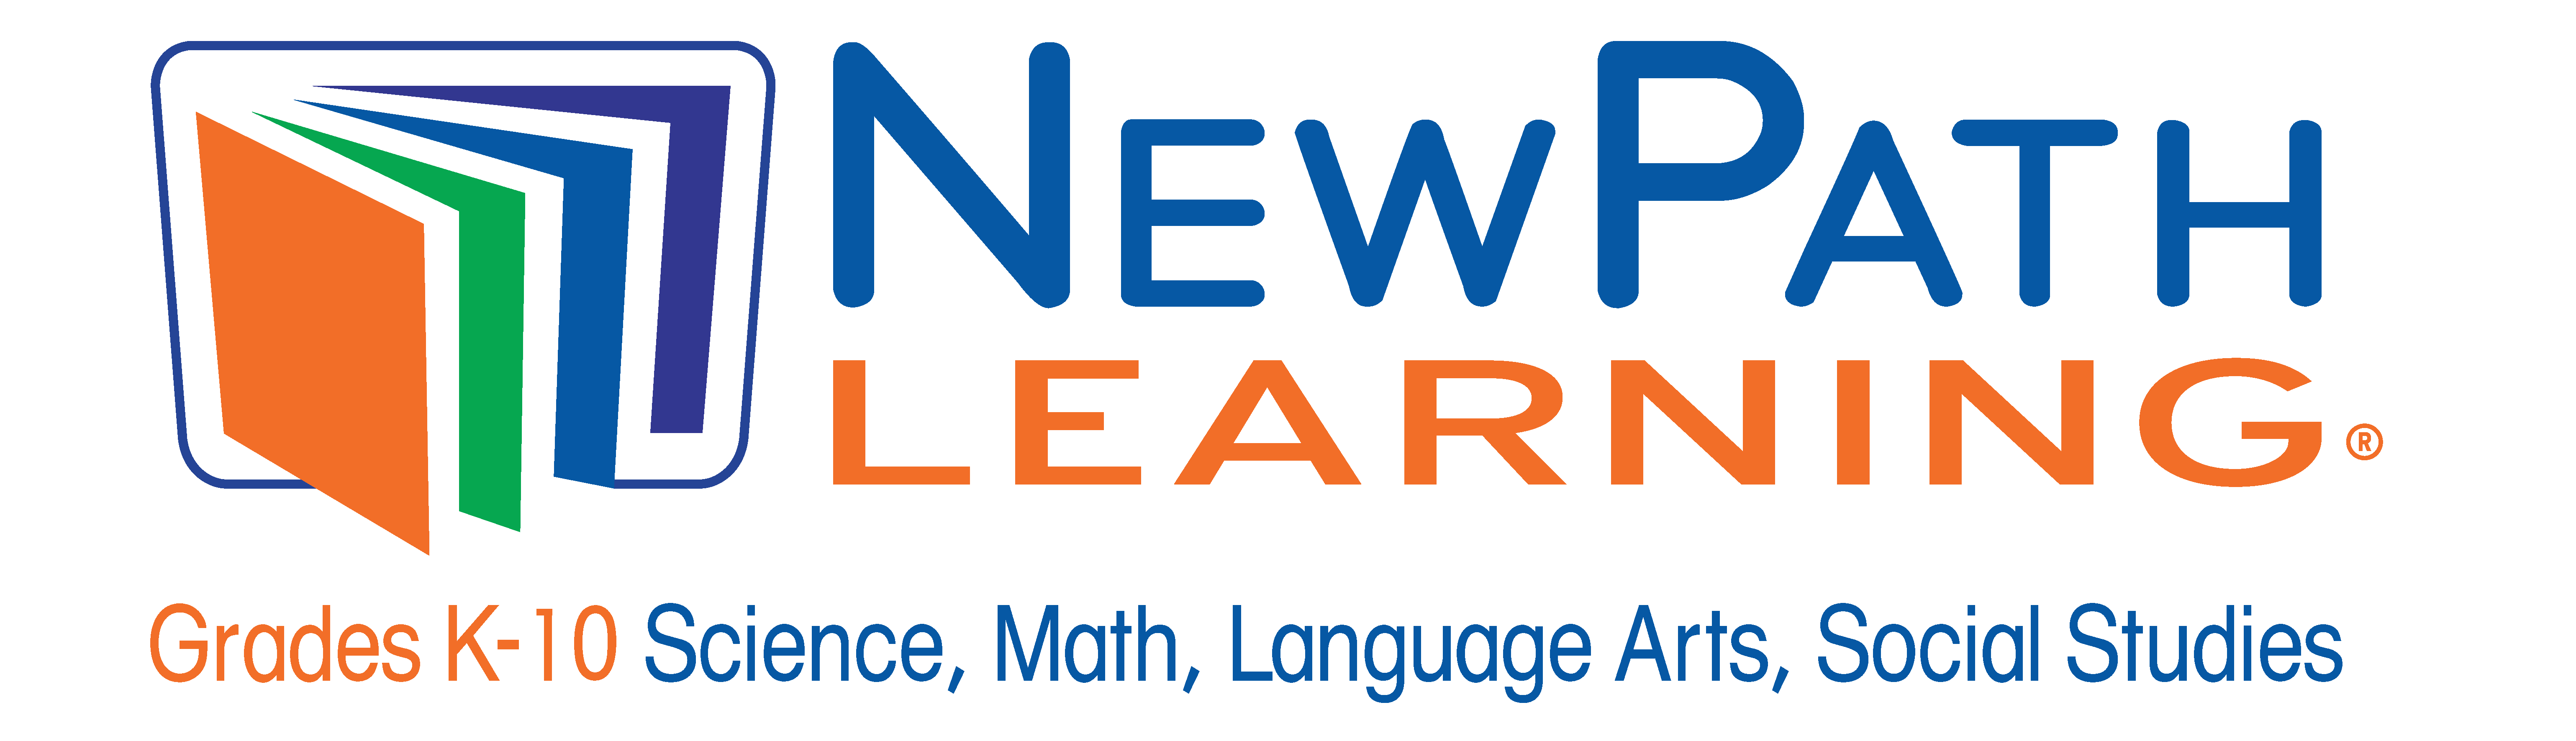 New Path Learning | Research-based Hands-On, Print and Digital Curriculum Resources for Intervention, Enrichment and Remote Learning